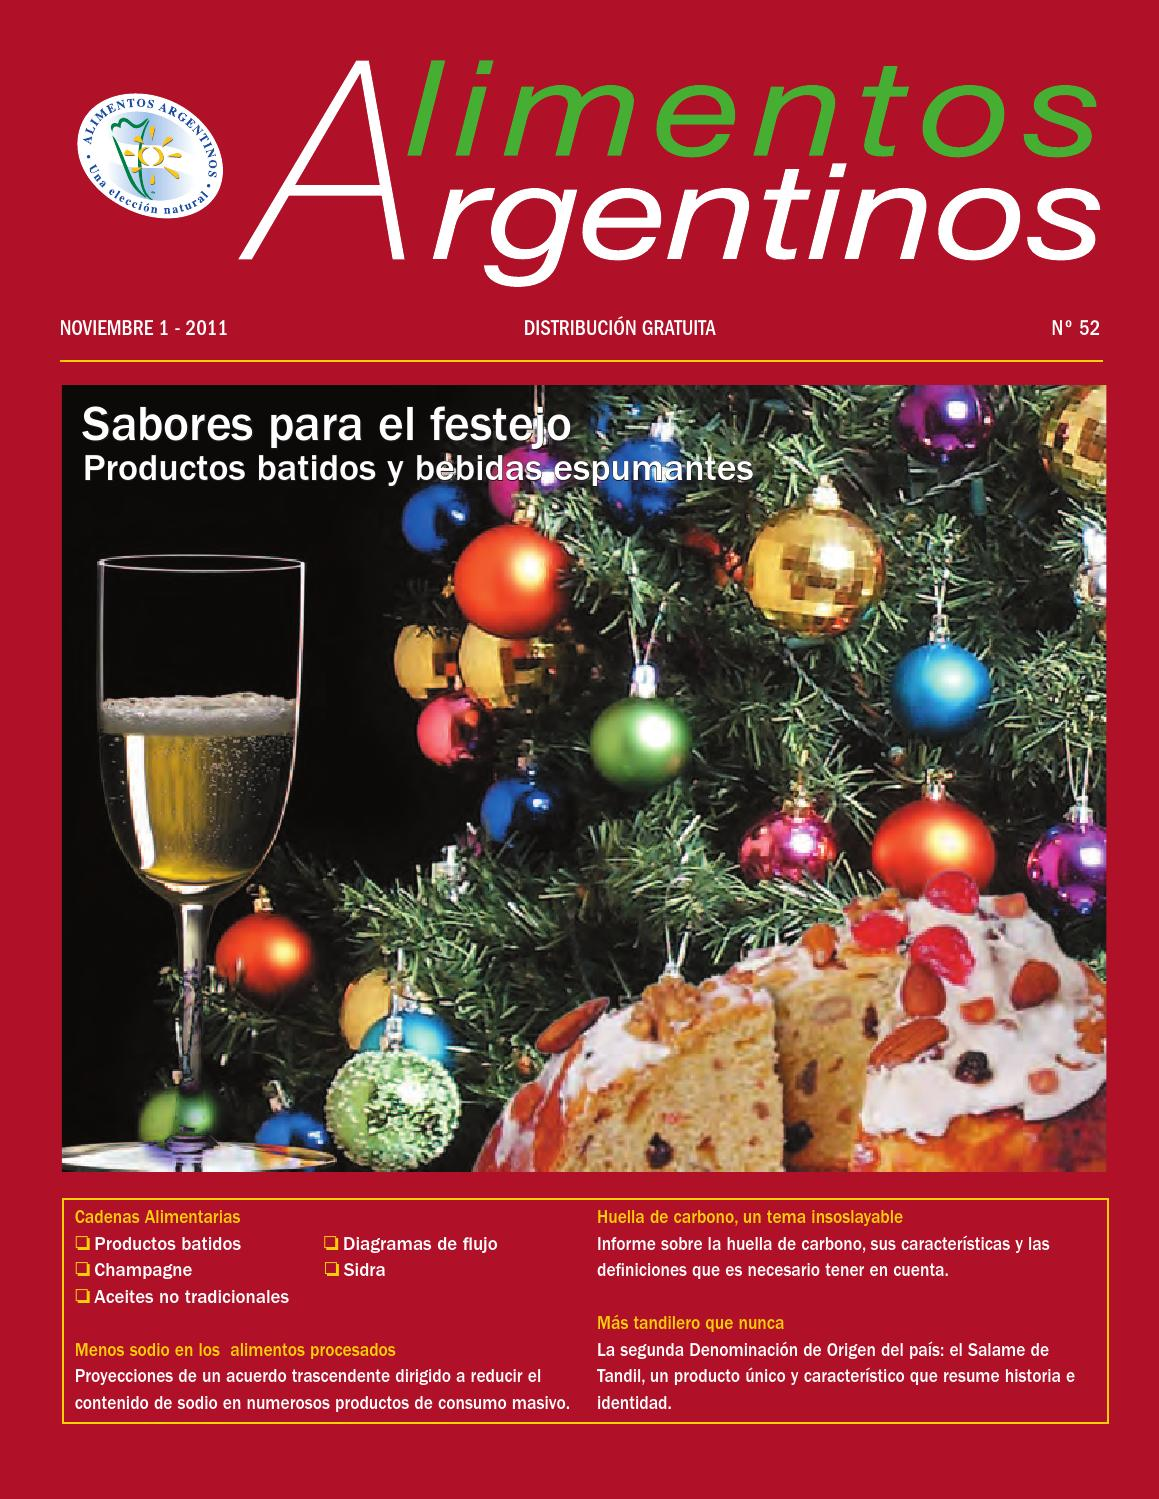 Revista alimentos argentinos n 52 by siia issuu for Revistas del espectaculo argentino